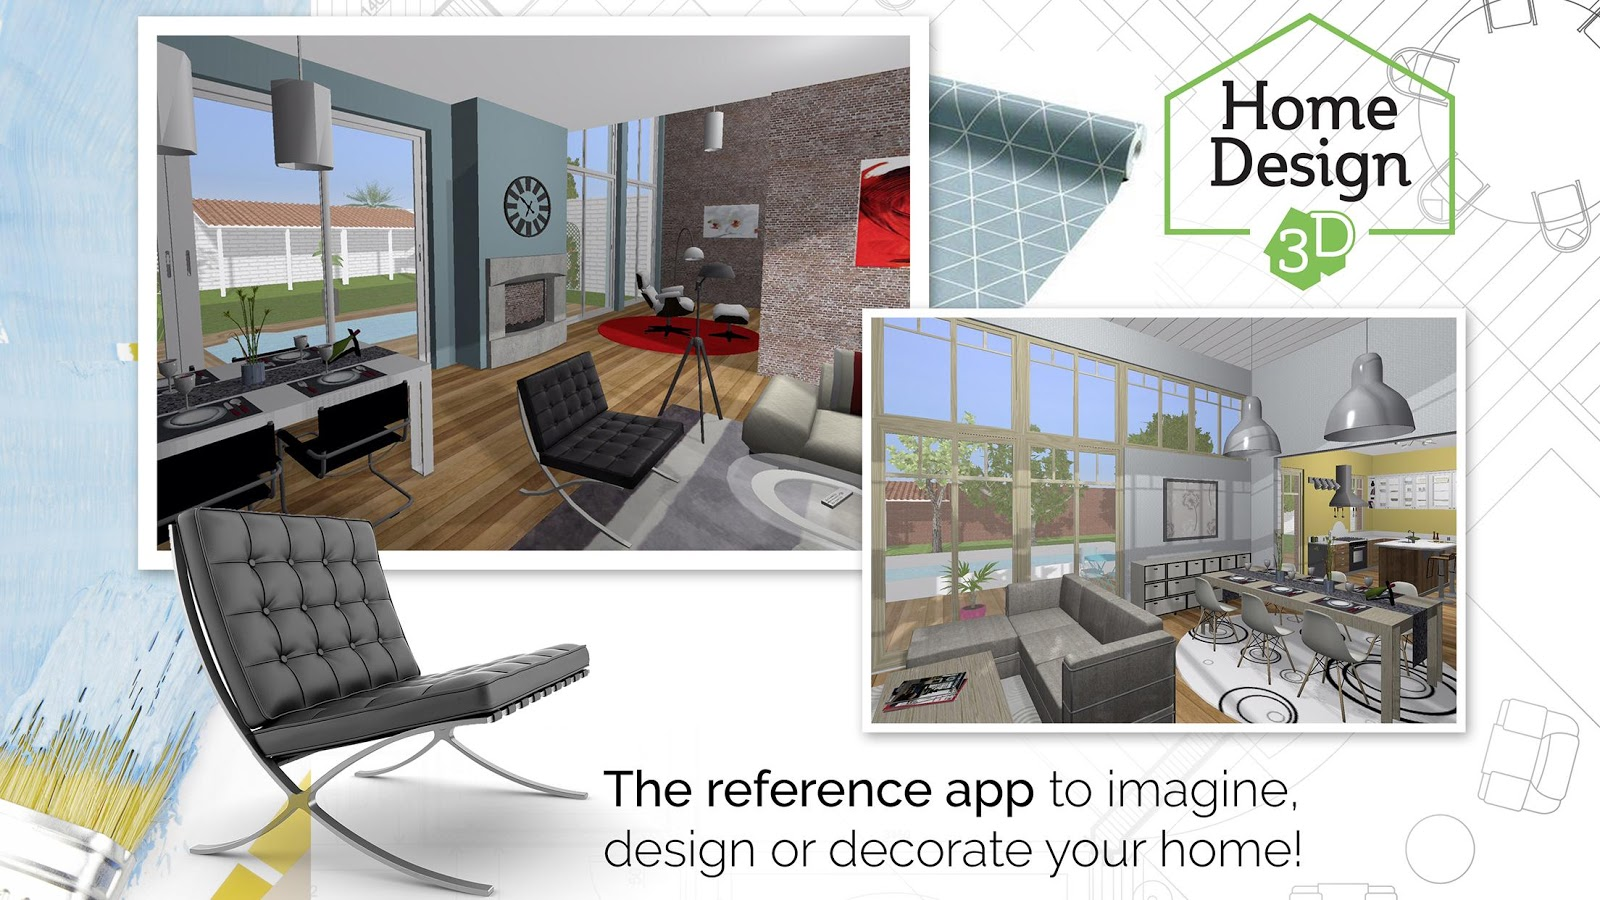 Home design 3d freemium android apps on google play for Room design 3d app